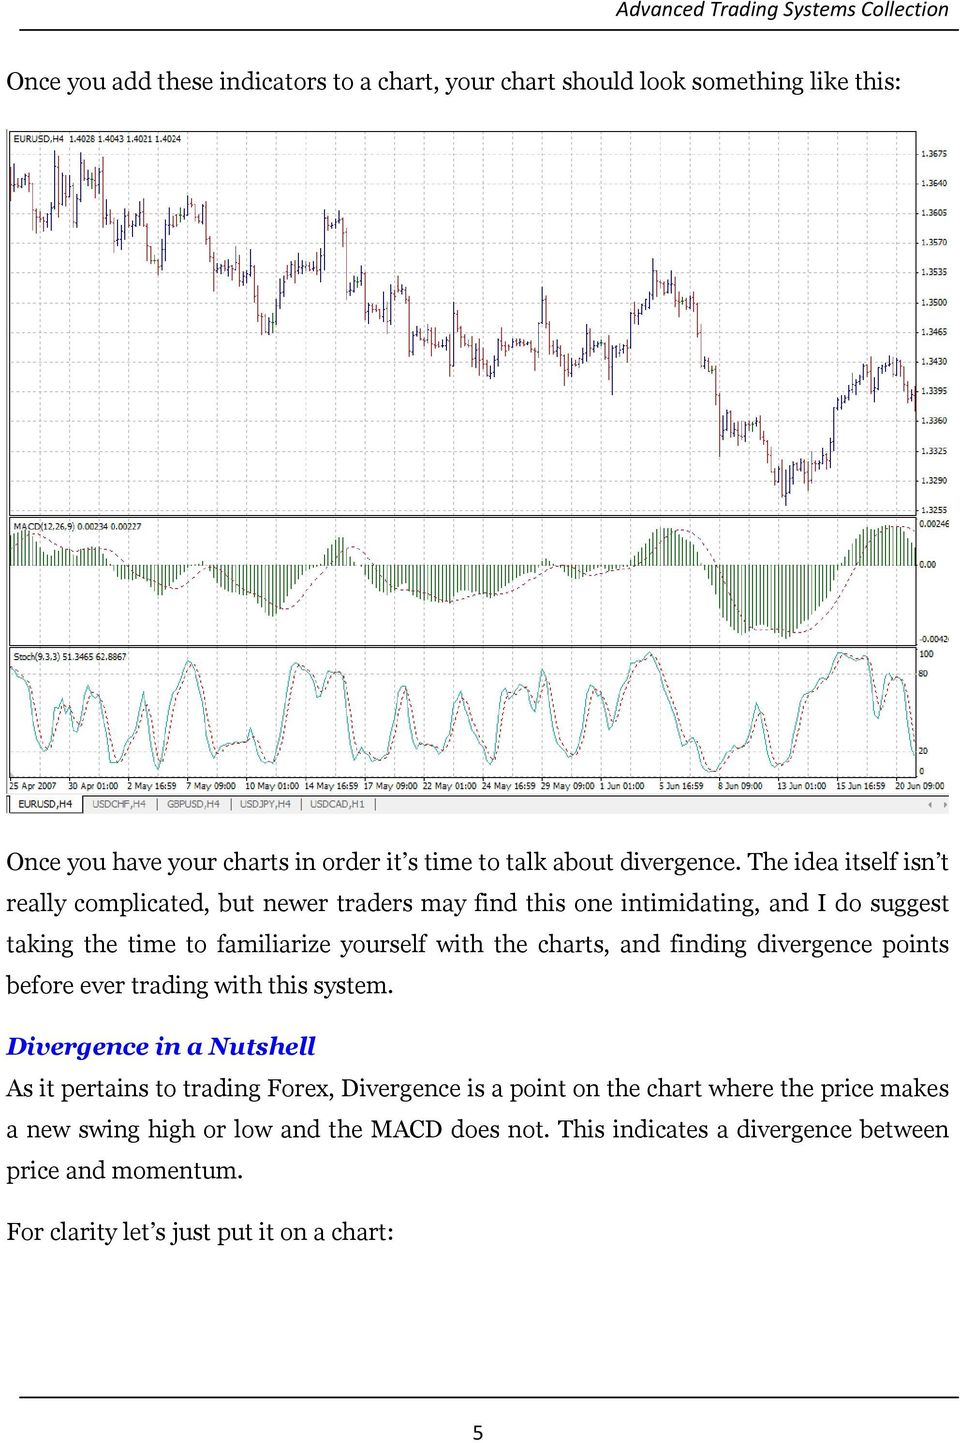 charts, and finding divergence points before ever trading with this system.